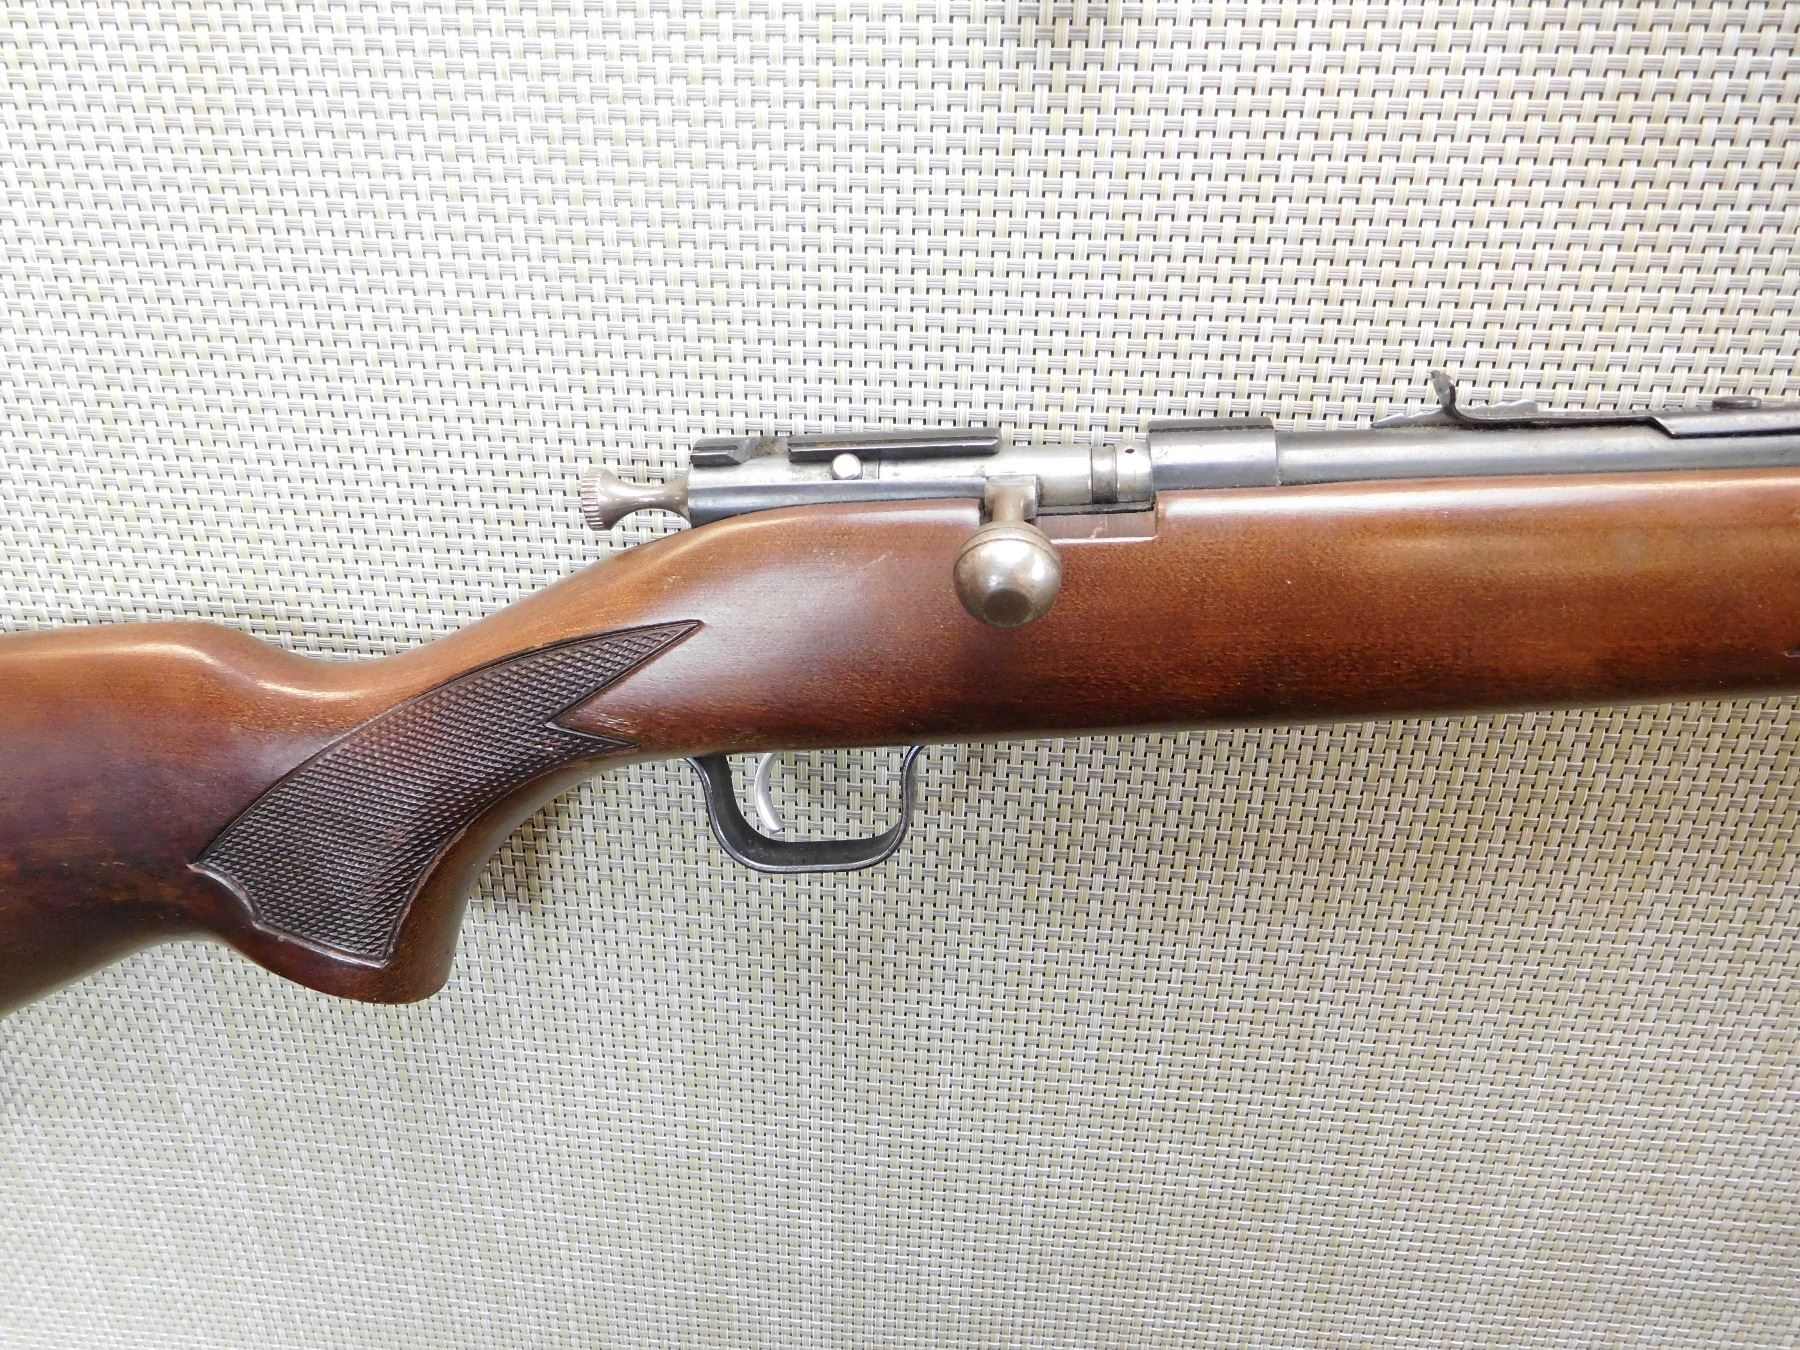 cooey winchester model 600 caliber 22 lr rh icollector com Model 4 22 Winchester Cooey 22 Rifle